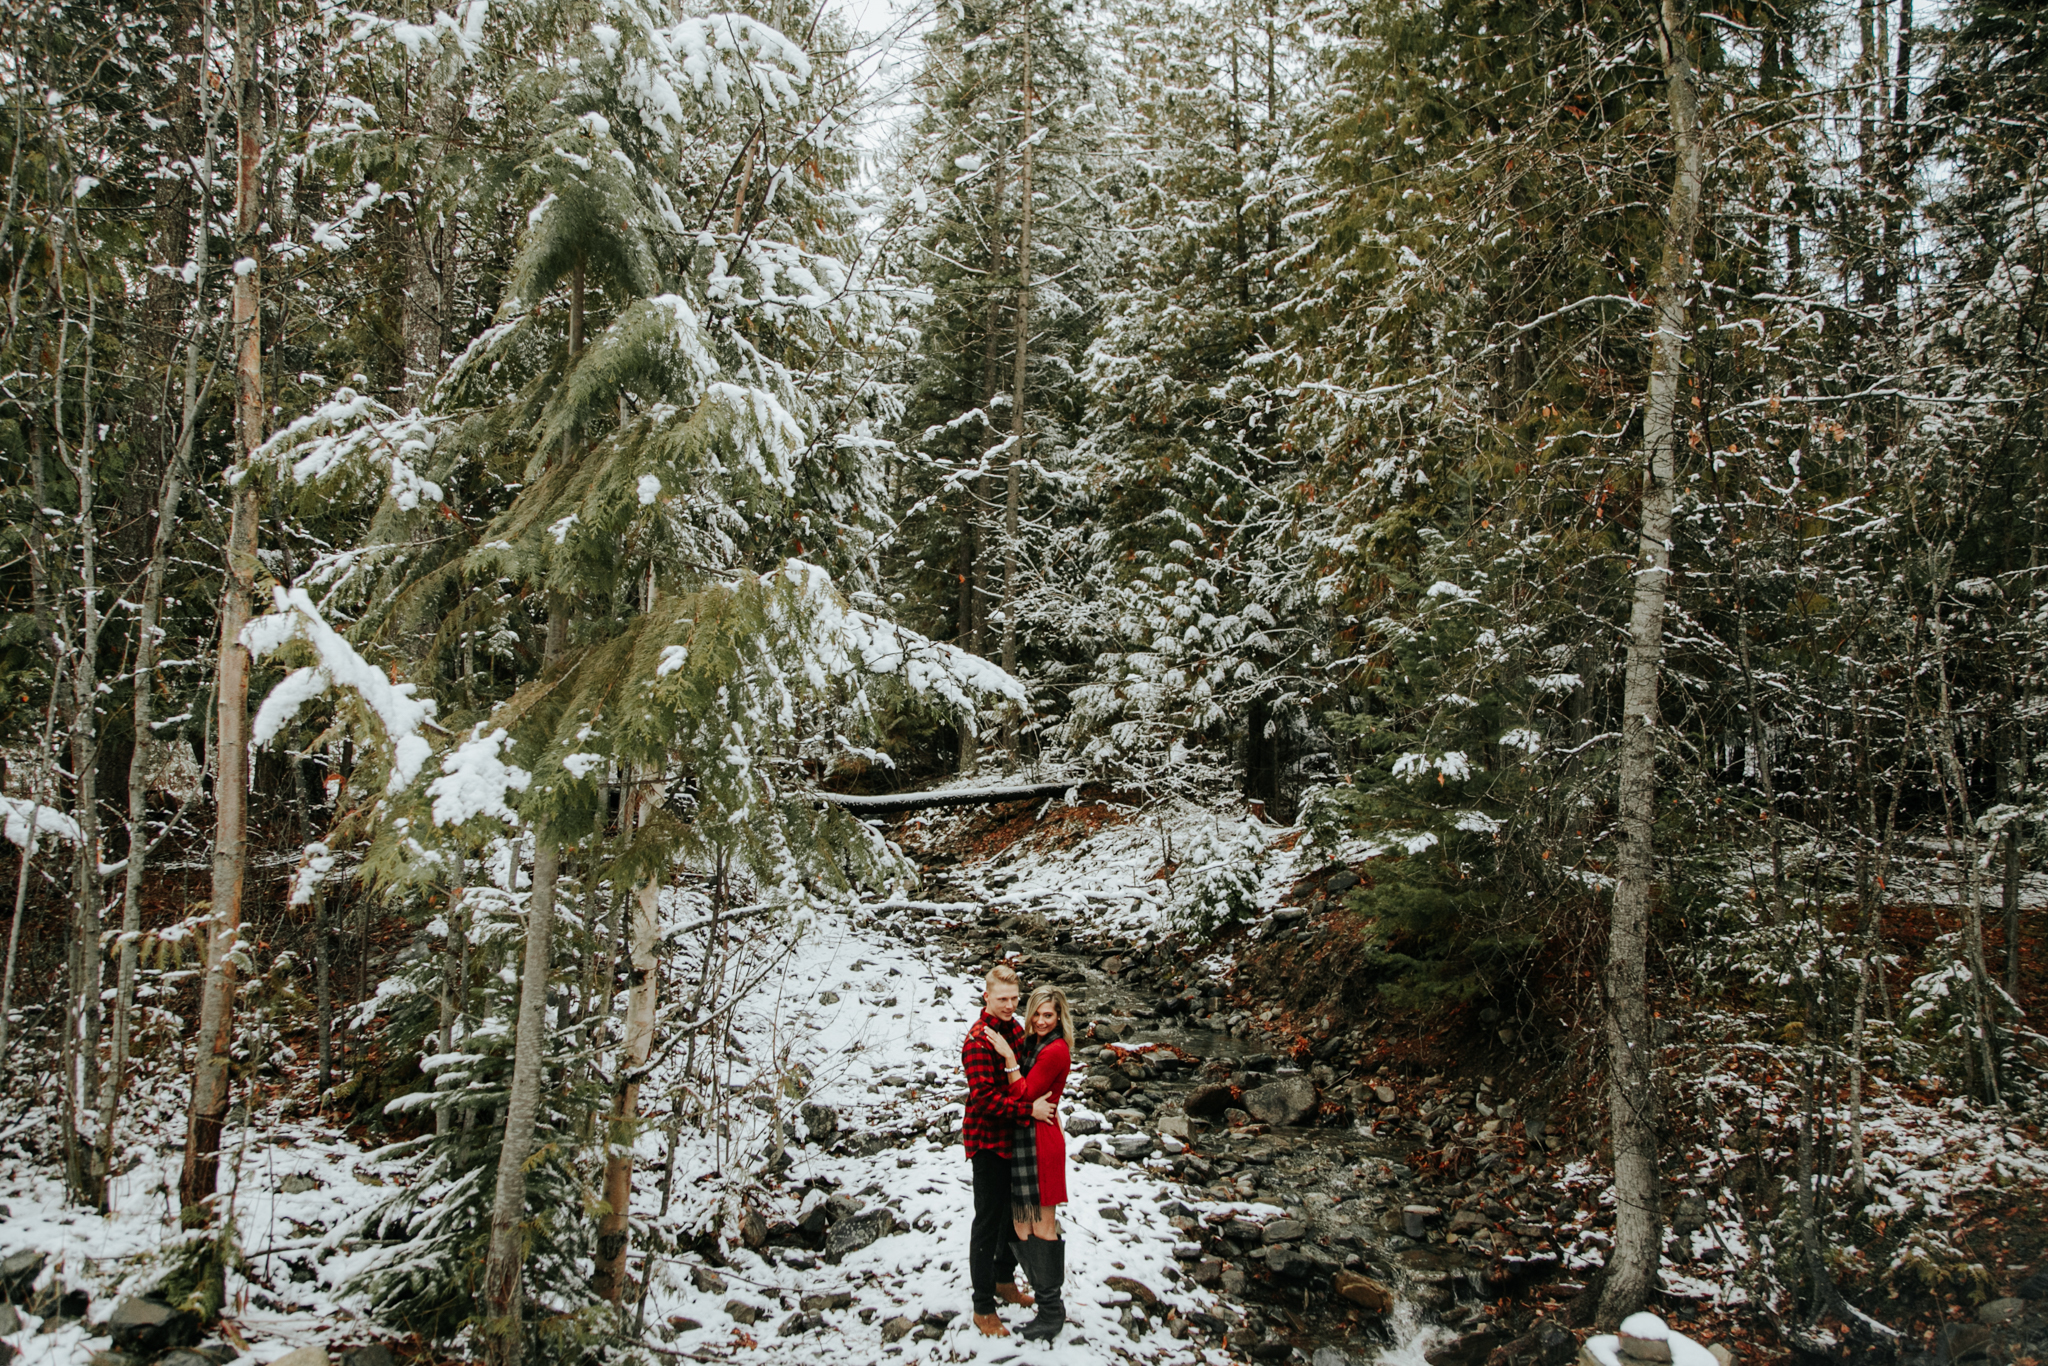 love-and-be-loved-photography-mountain-engagement-ashlyn-rob-perfect-fit-4-u-photo-image-picture-40.jpg